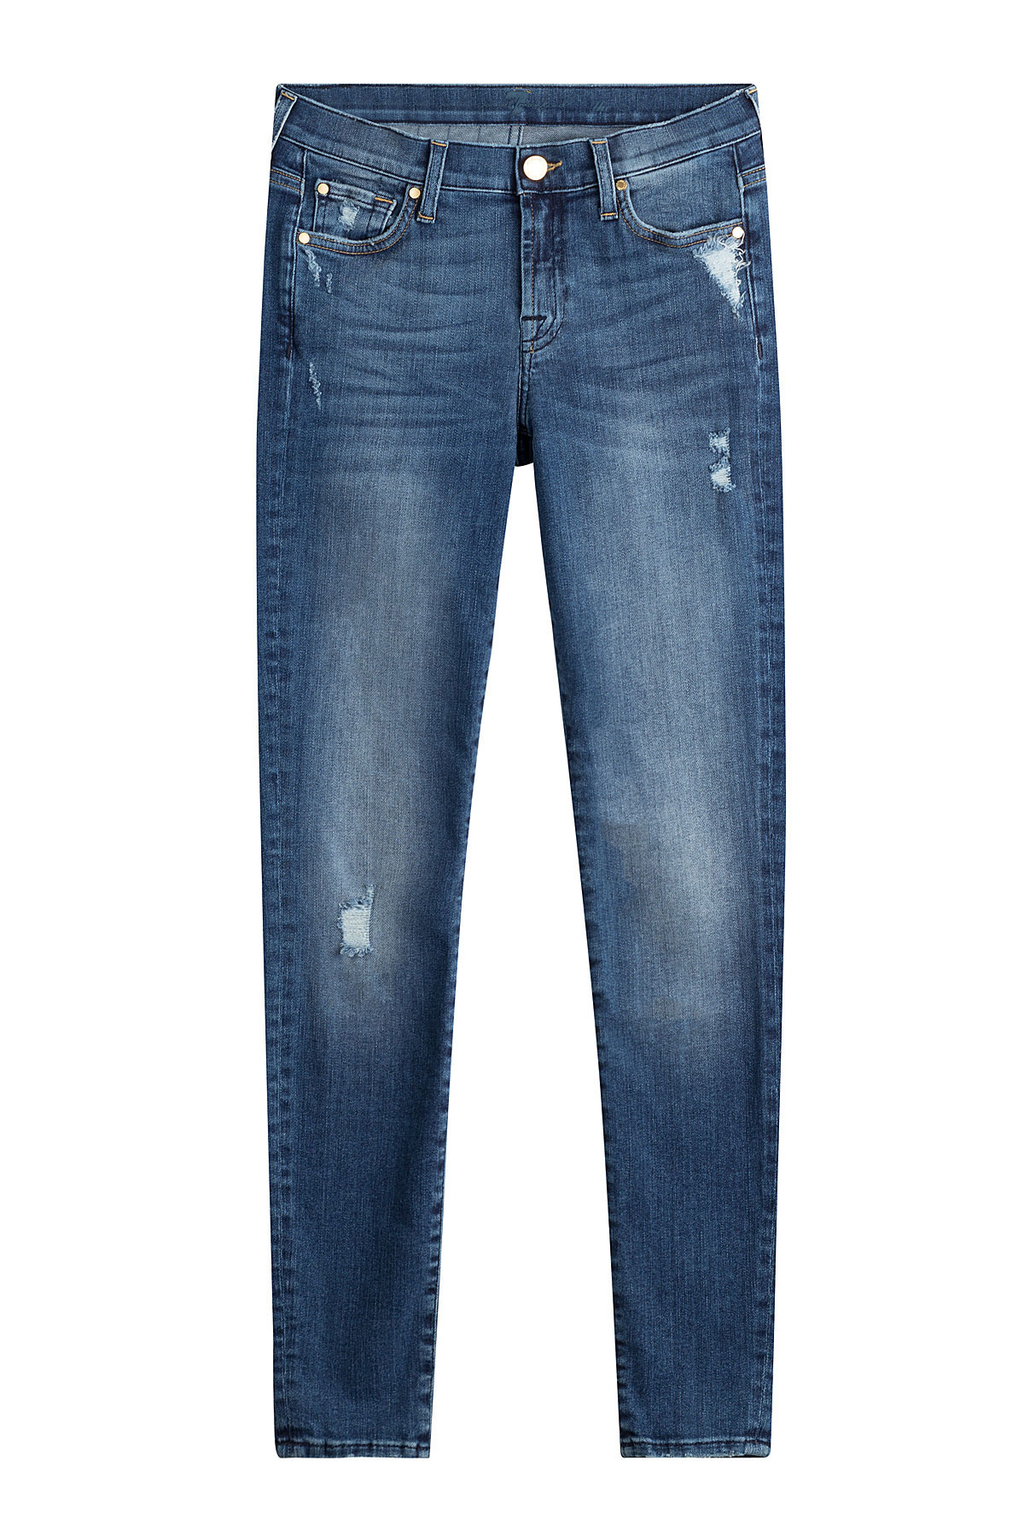 Distressed Skinny Jeans - style: skinny leg; length: standard; pattern: plain; pocket detail: traditional 5 pocket; waist: mid/regular rise; predominant colour: denim; occasions: casual; fibres: cotton - stretch; texture group: denim; pattern type: fabric; jeans detail: rips; wardrobe: basic; season: a/w 2016